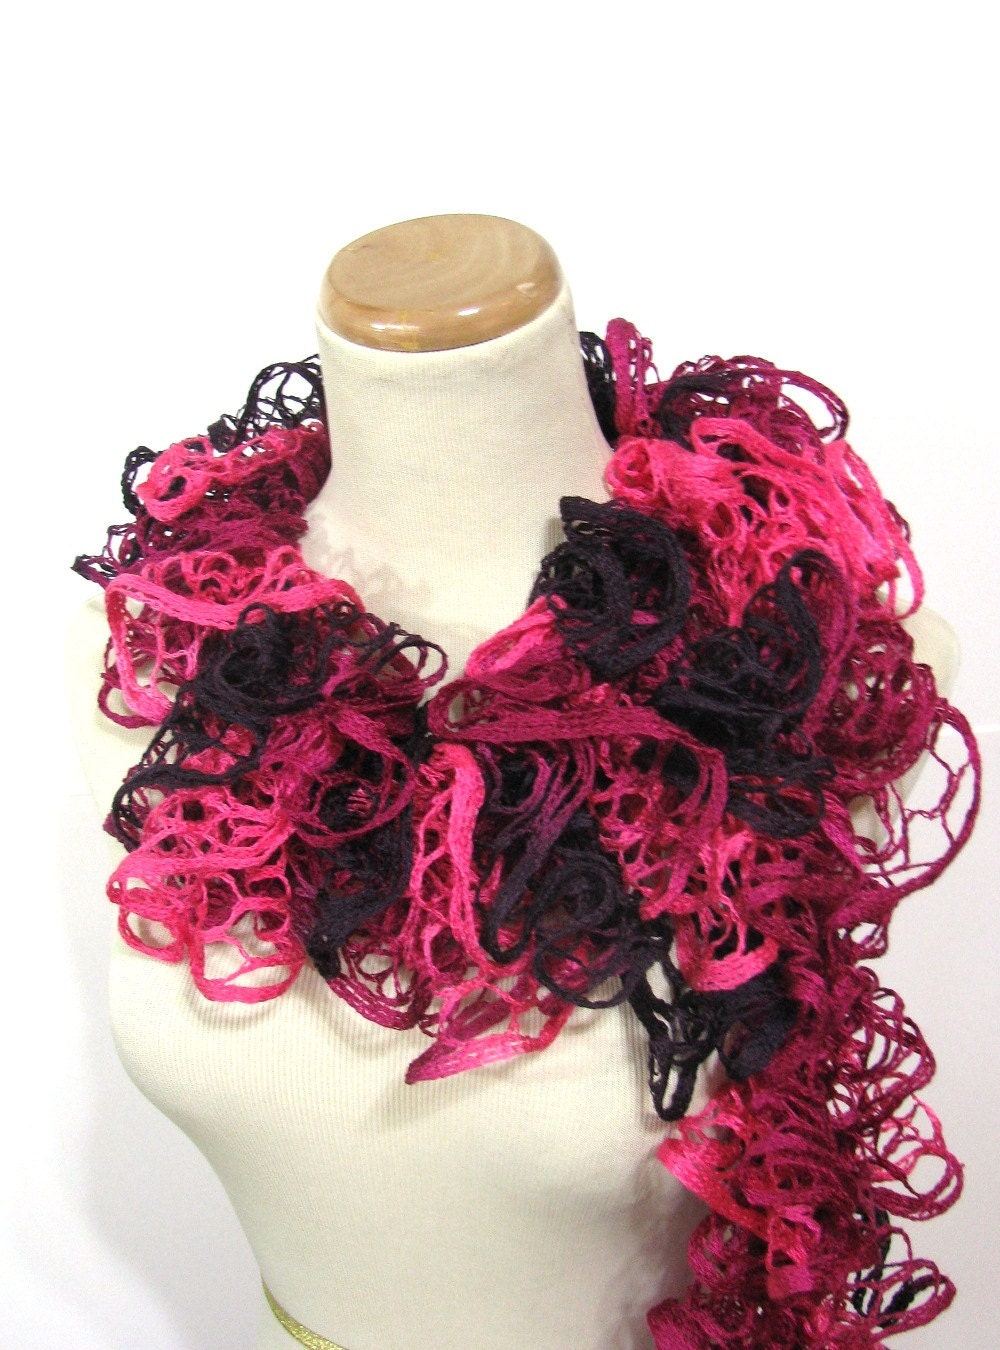 Valentines Day Hand Knit Ruffled Scarf - Pink Hot Pink Purple